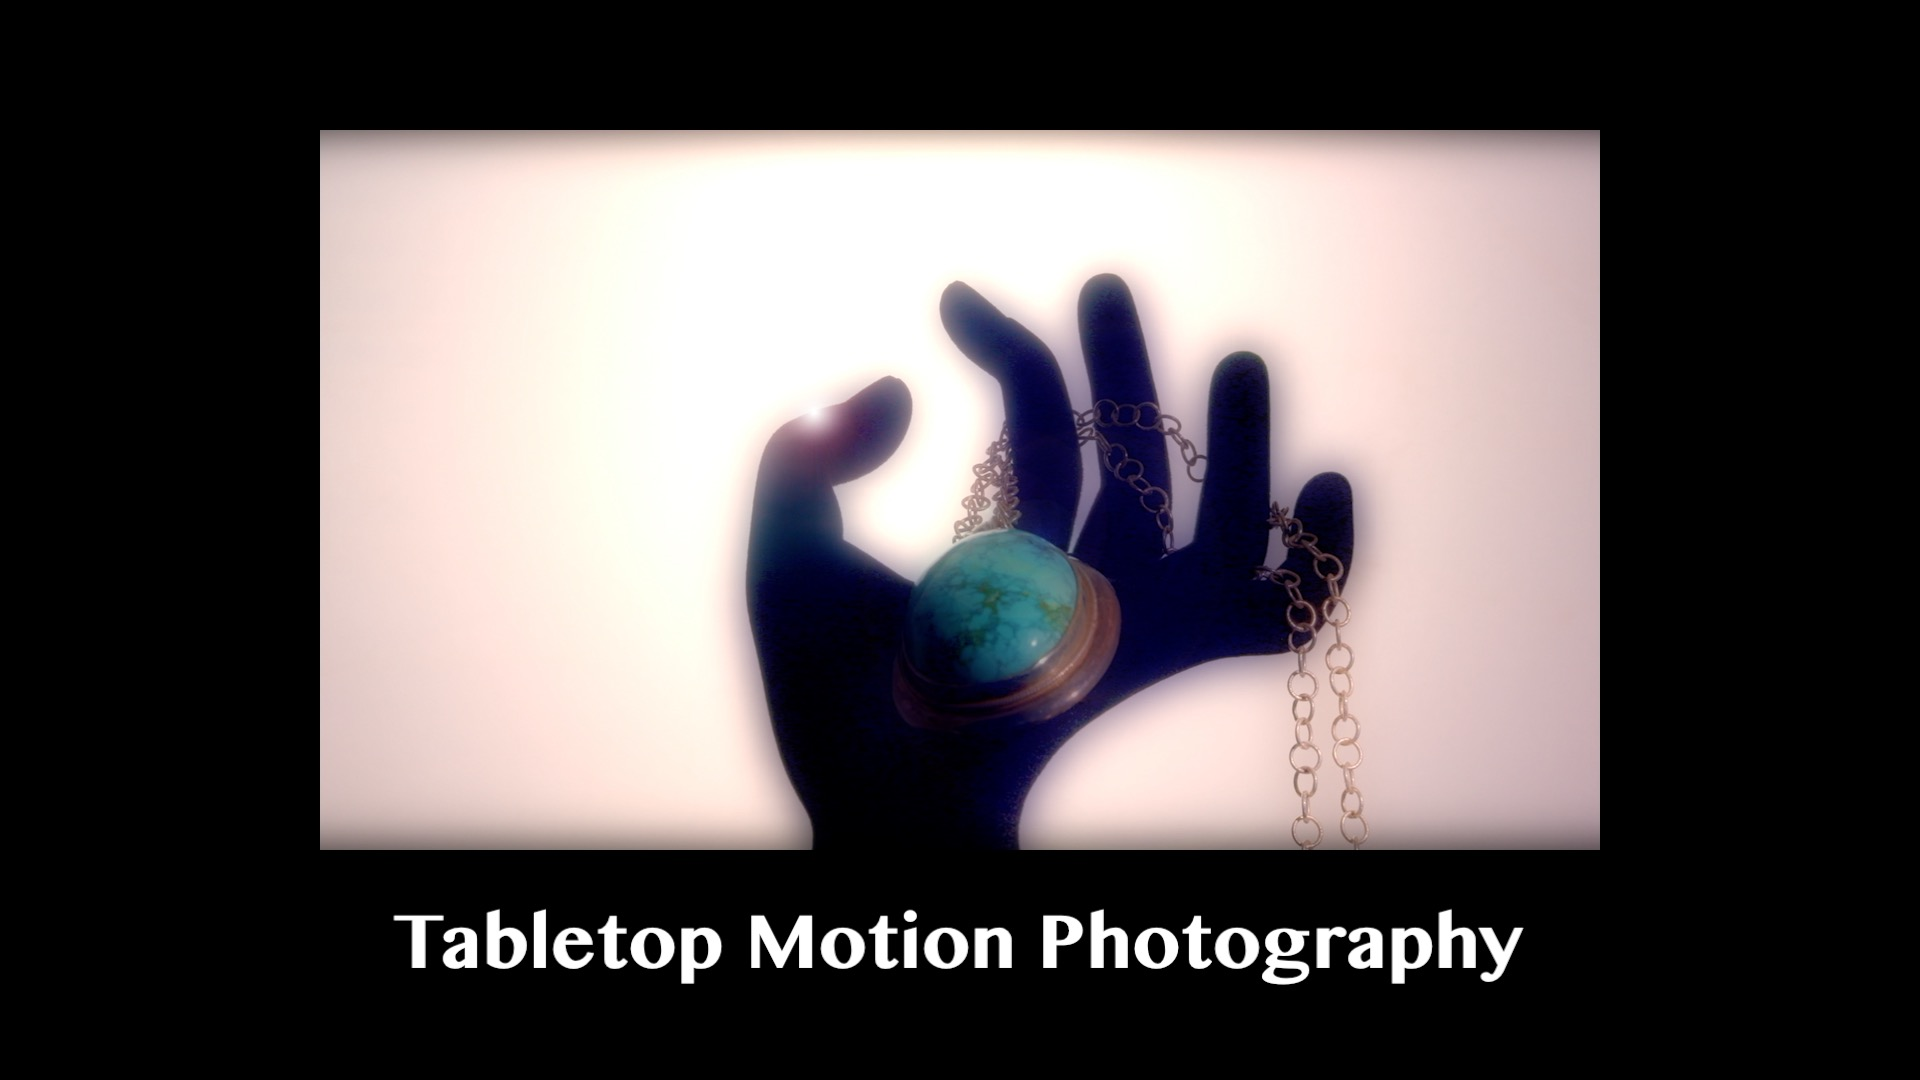 Tabletop Motion Photography Jewelry